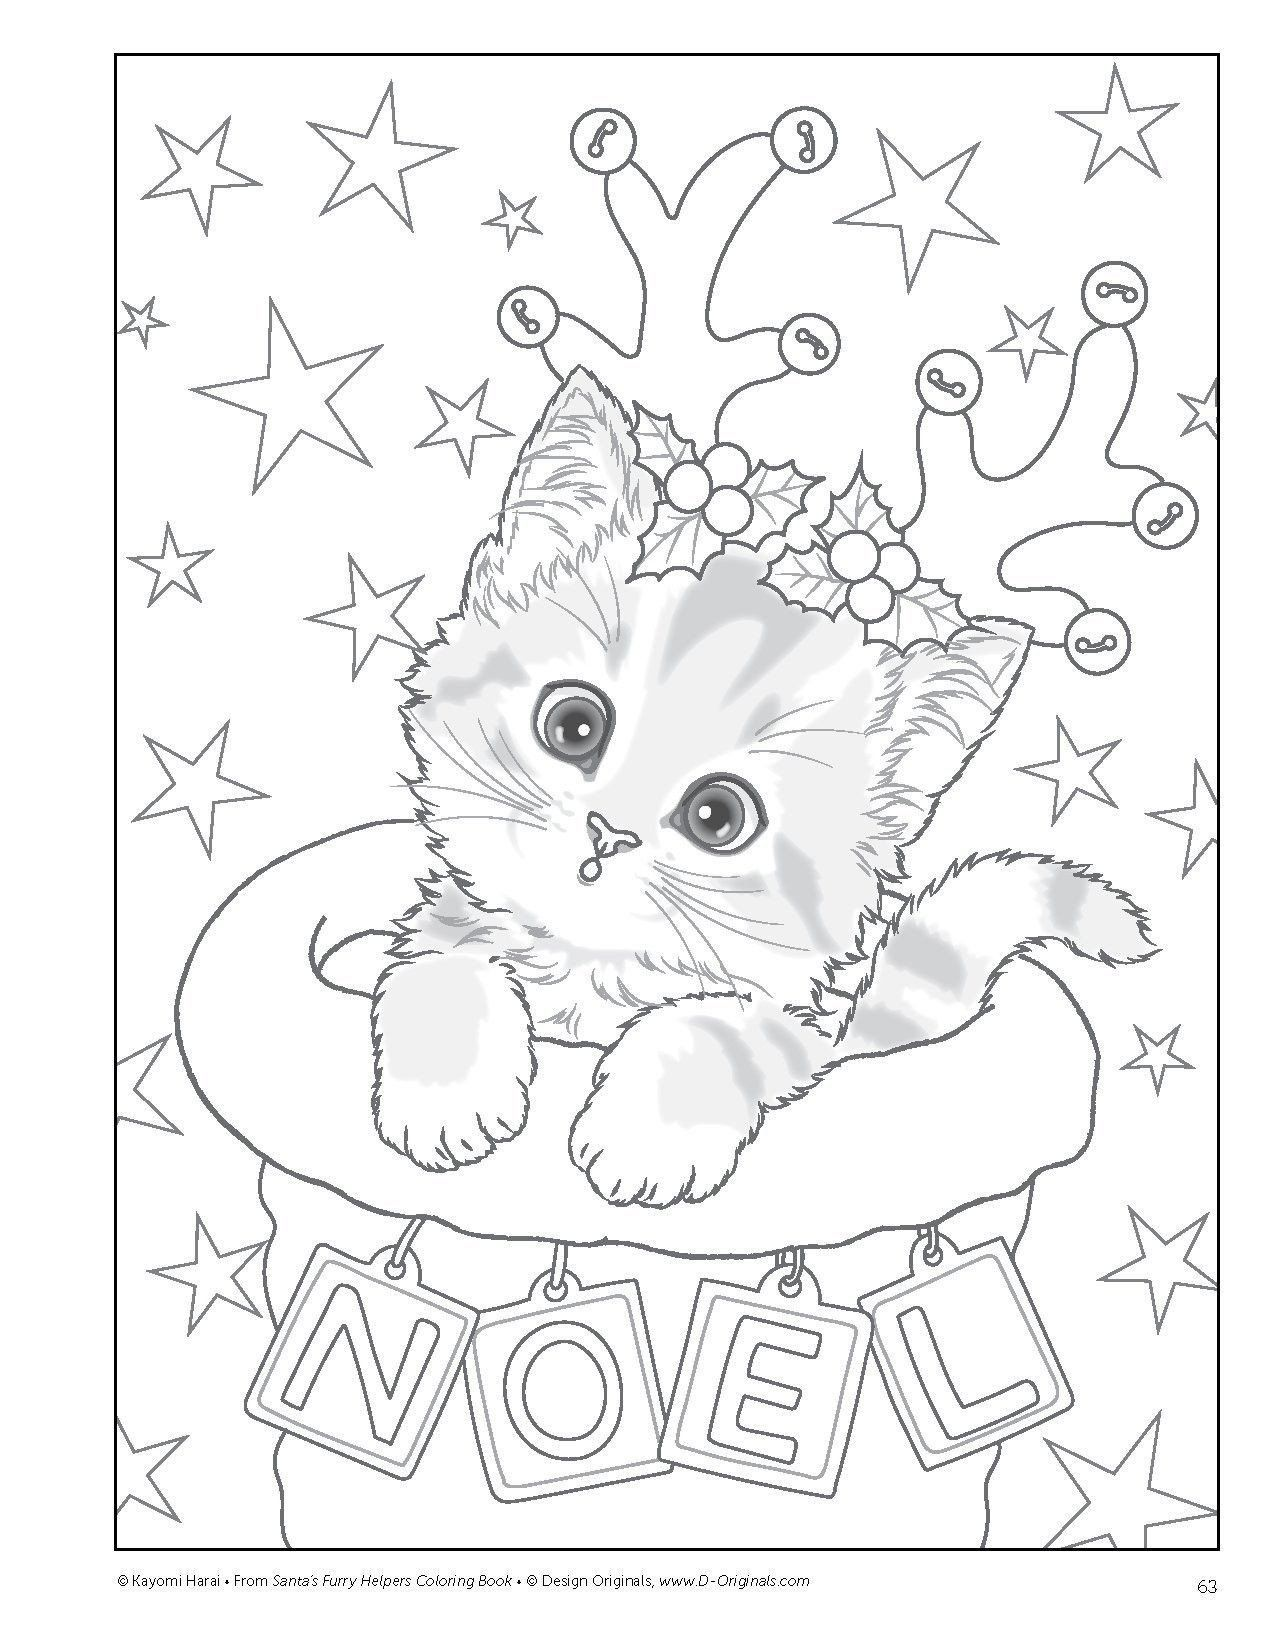 Kitty Cat Coloring Pages Elegant Coloring Book Astonishing Christmas Cat Coloring Pages Picture In 2020 Kitty Coloring Christmas Coloring Sheets Disney Coloring Pages